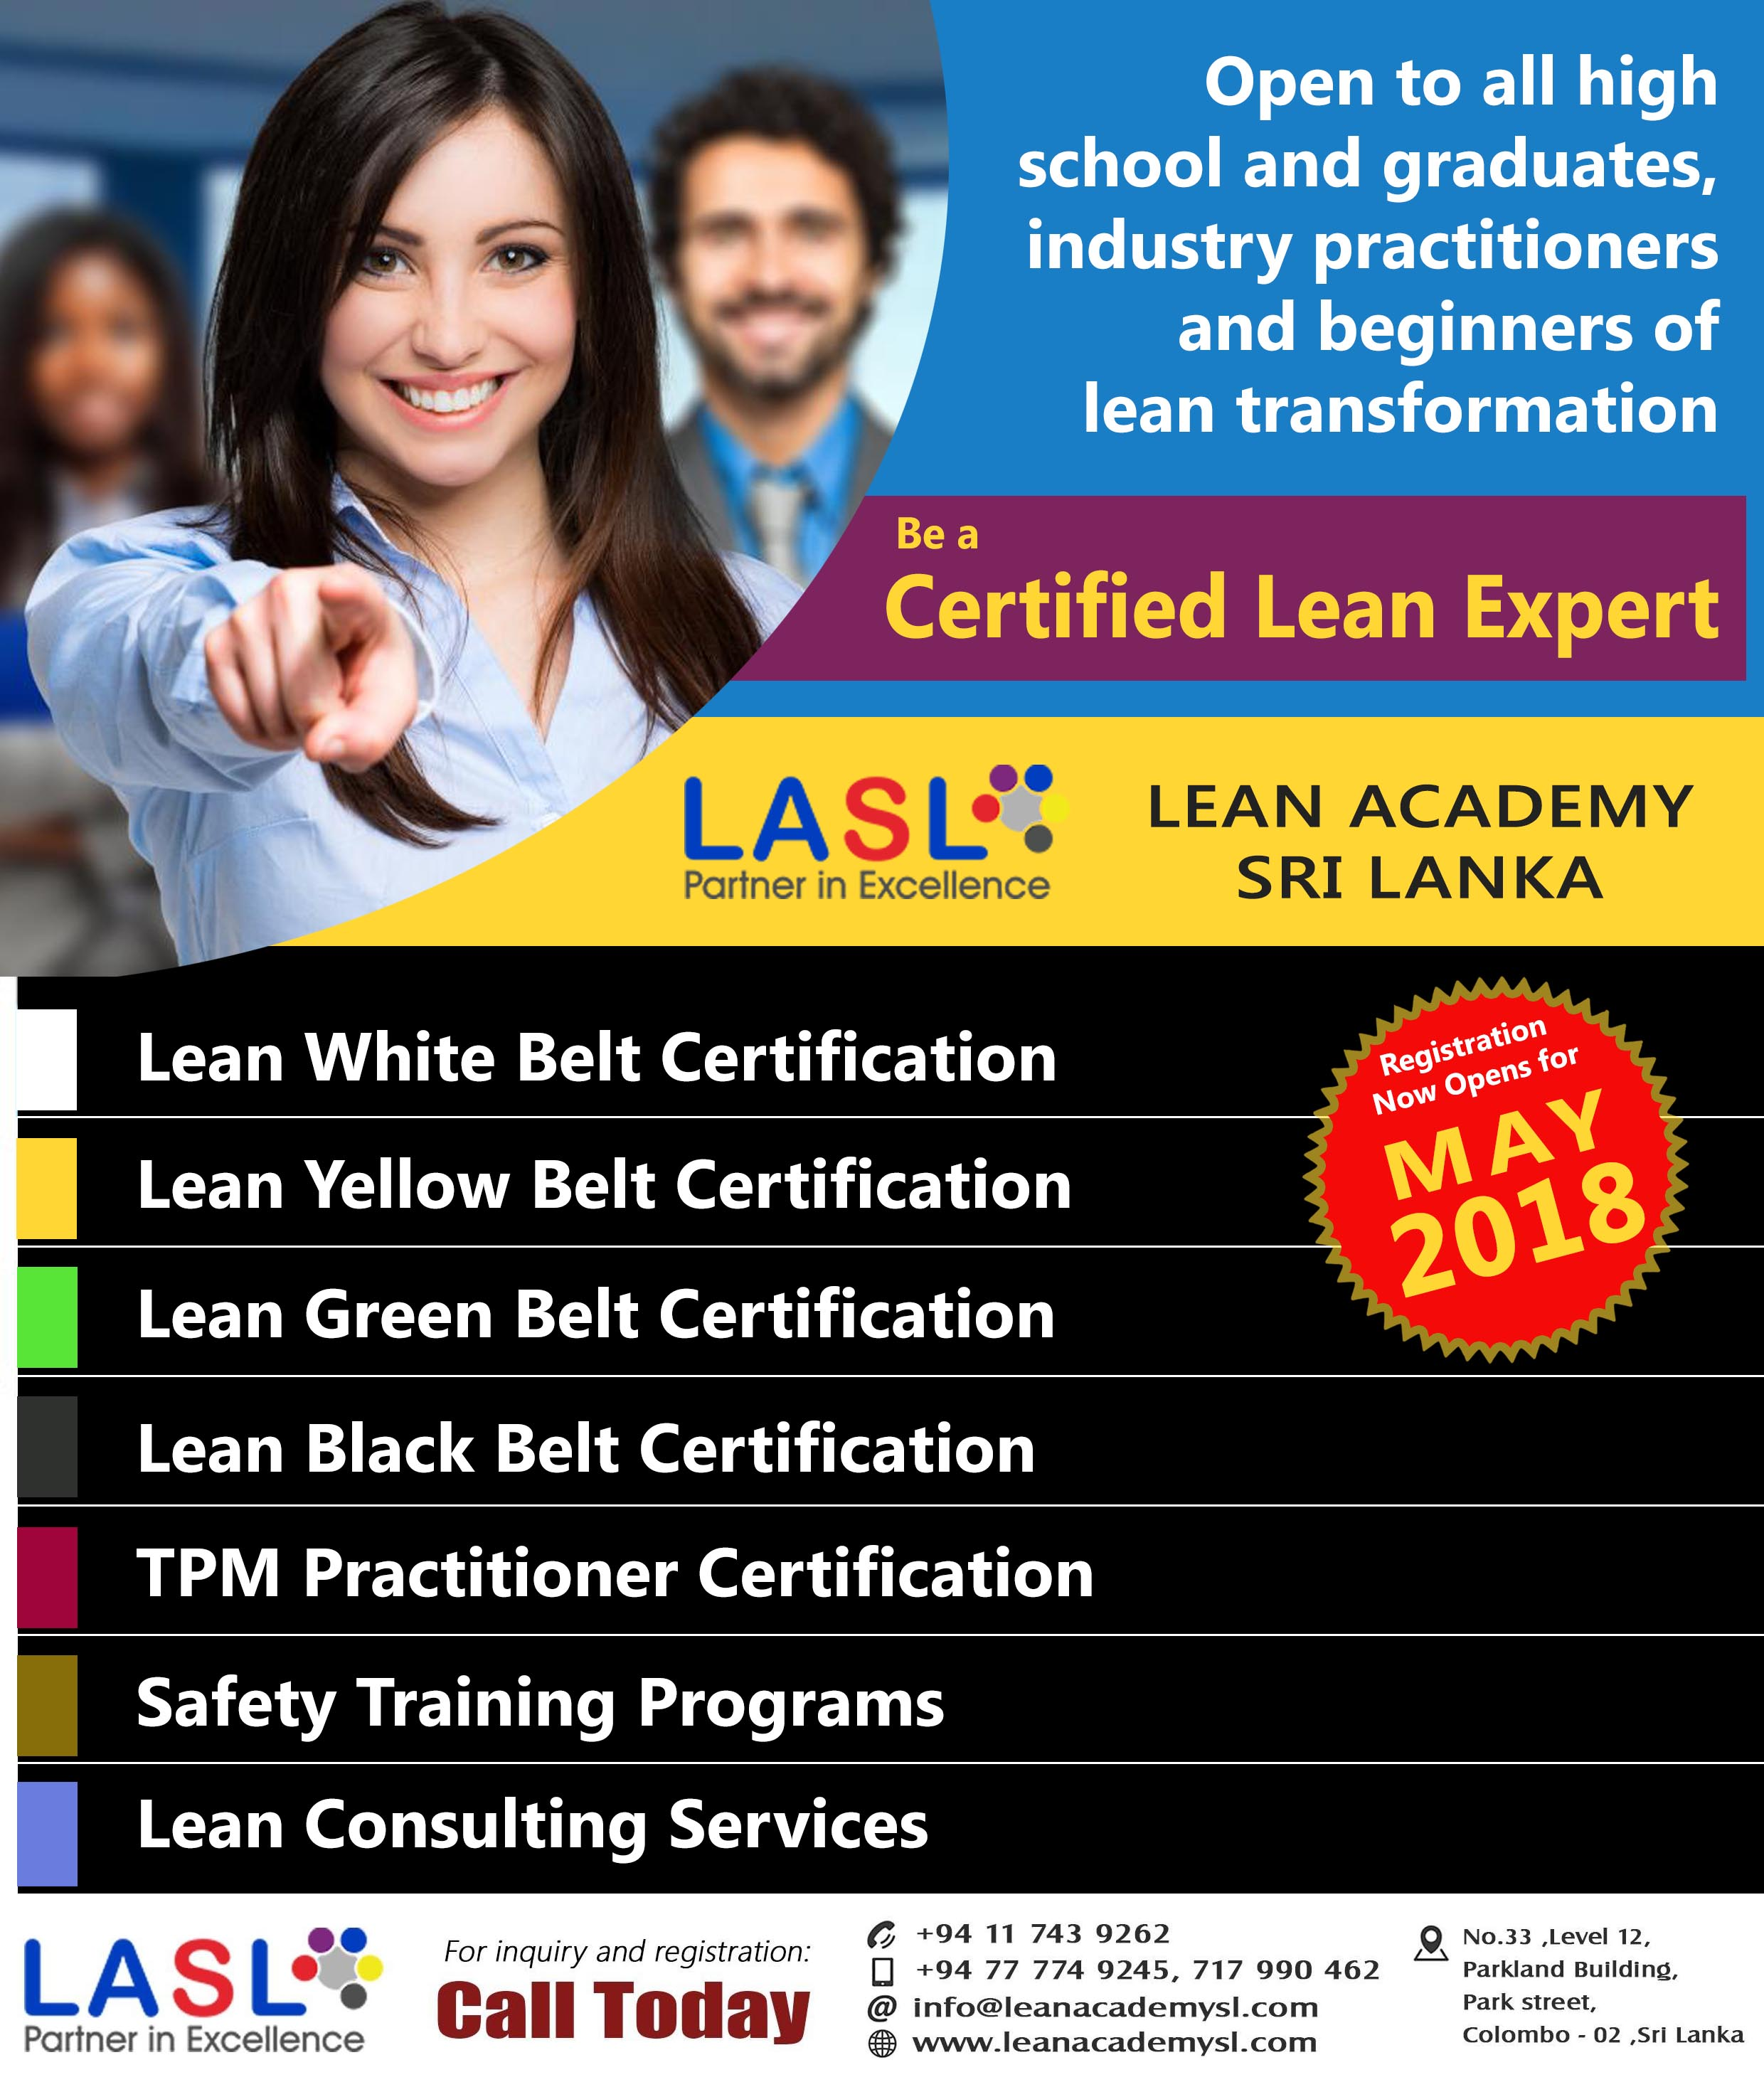 LASL Registrations Now Open for May 2018